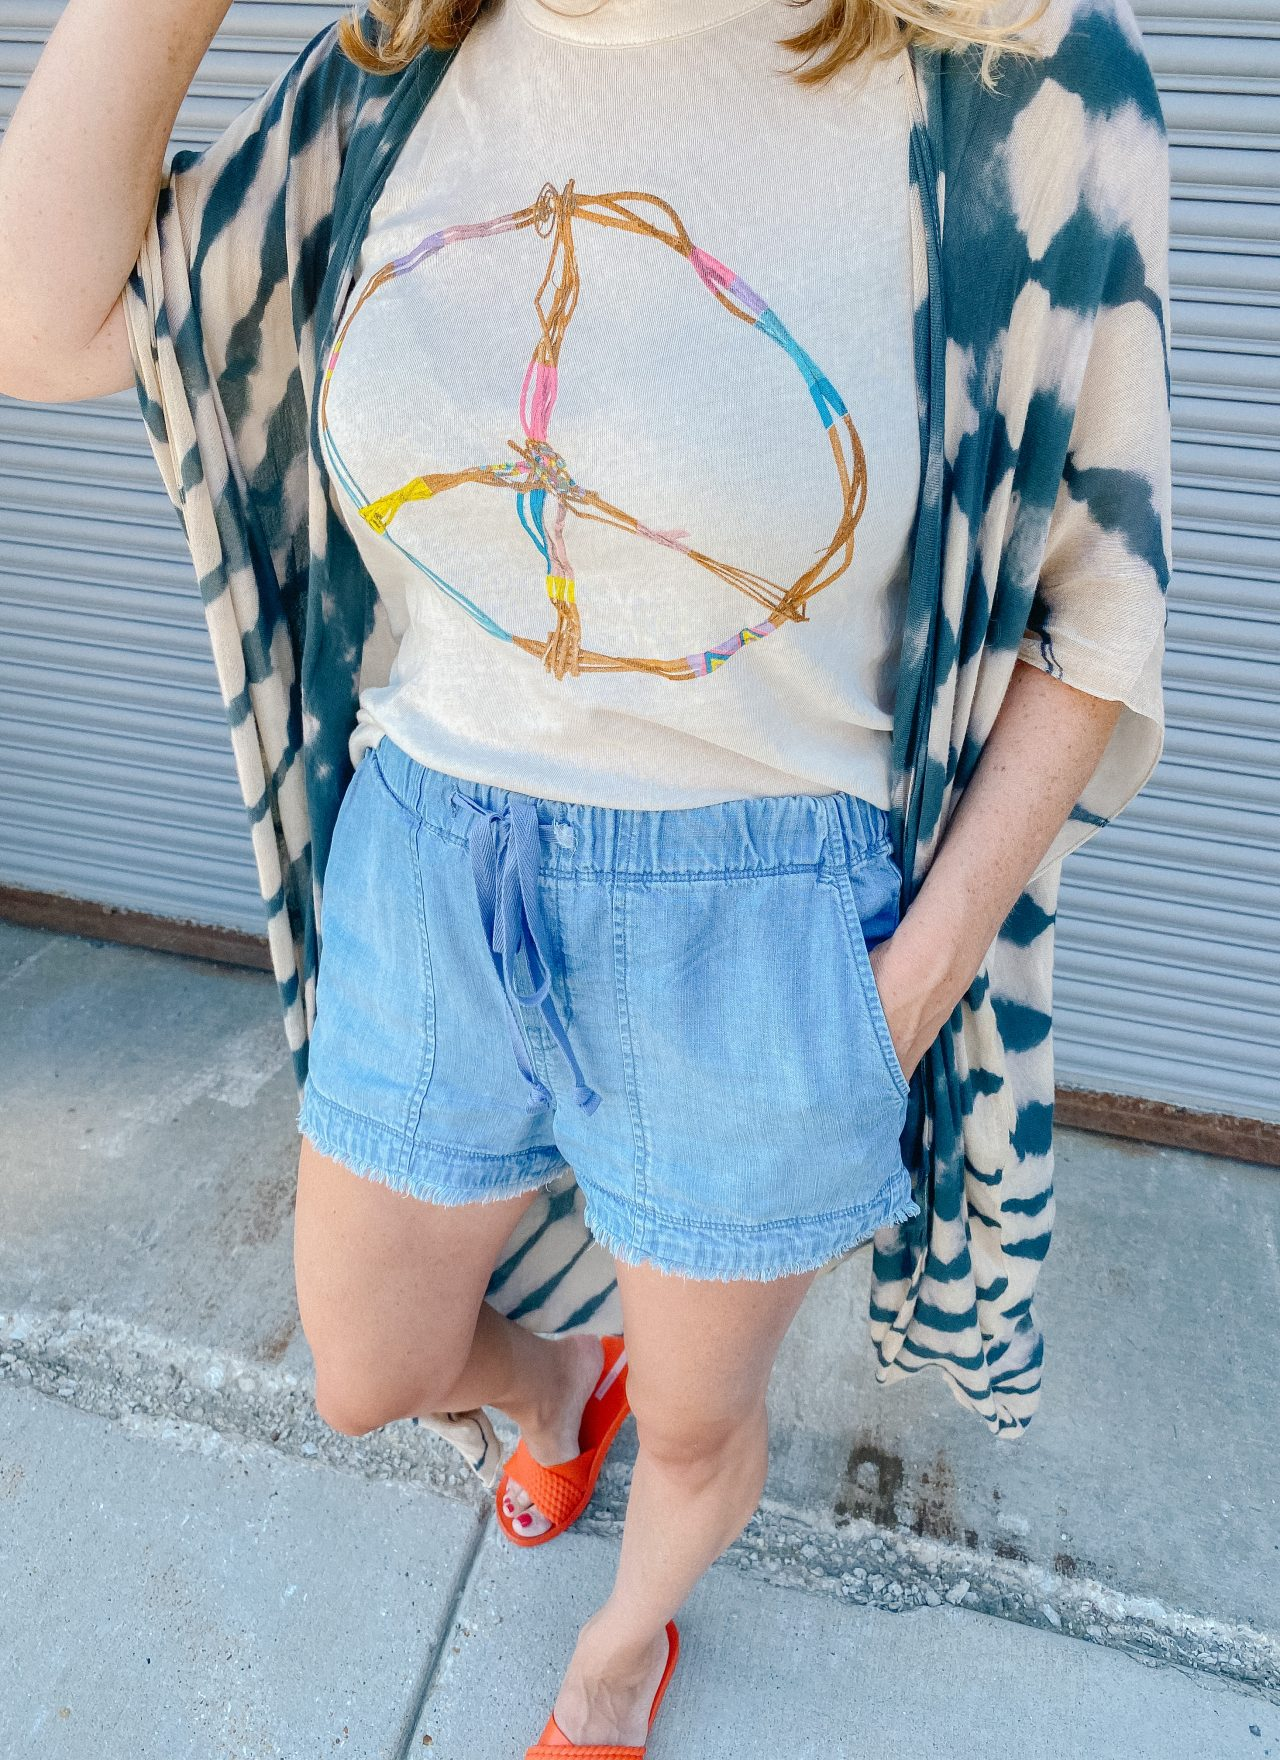 cutoff jeans shorts with elastic waistband